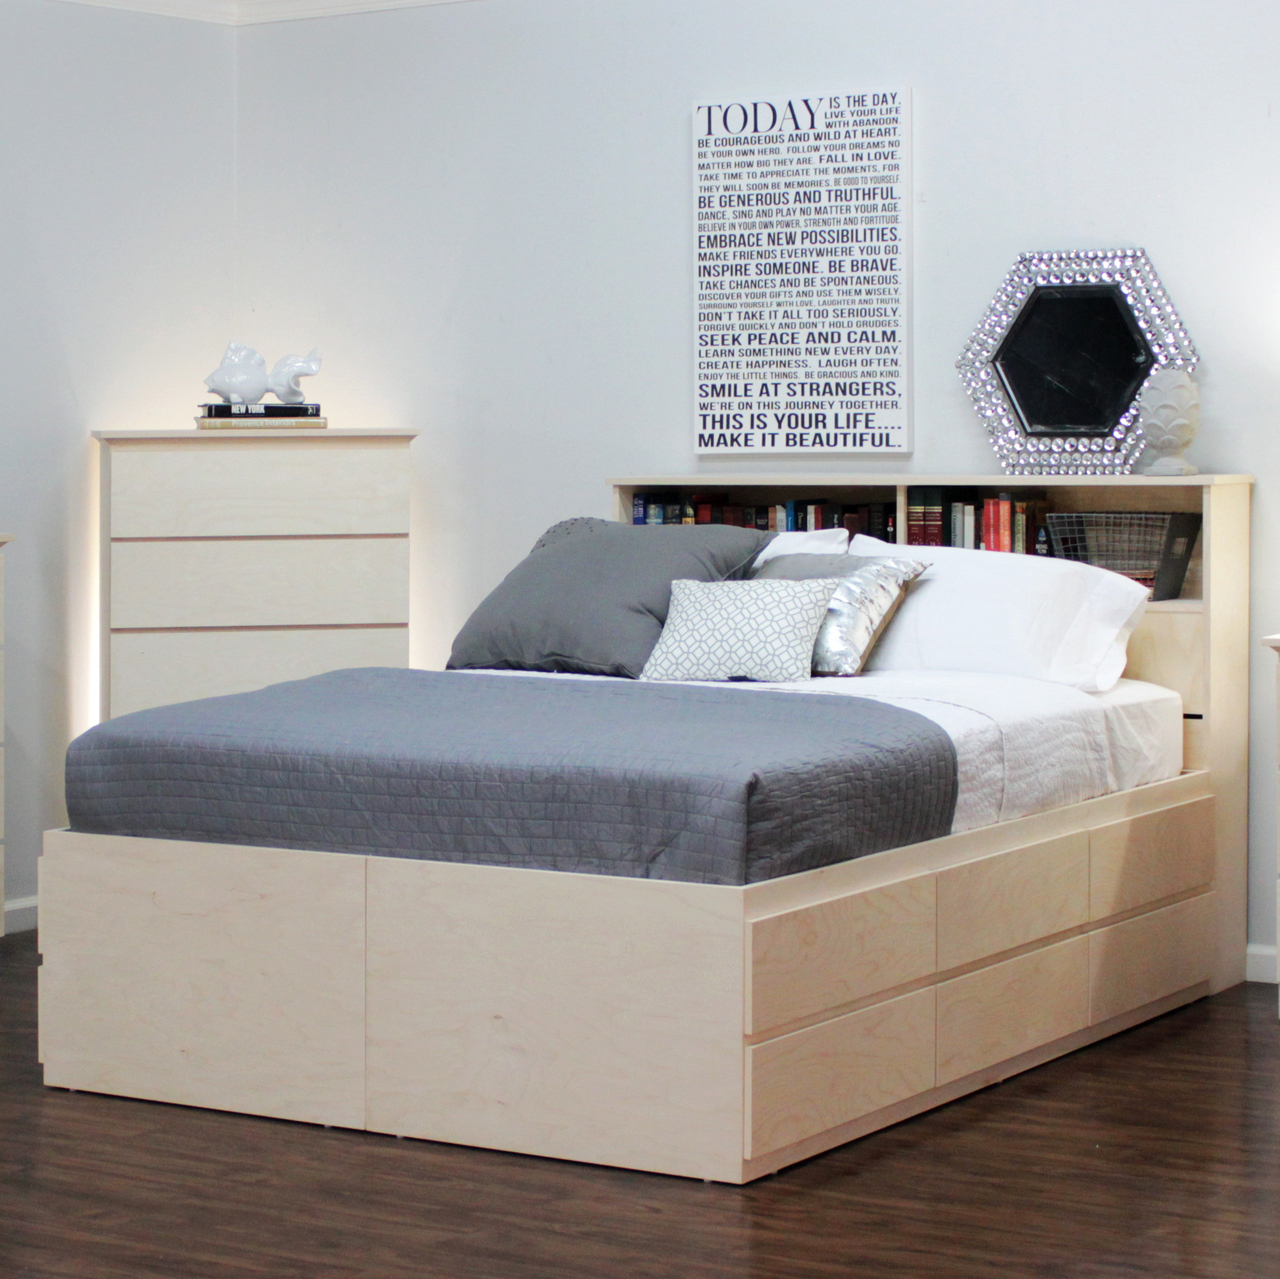 10 Best Storage Beds For 2021 Apartment Therapy